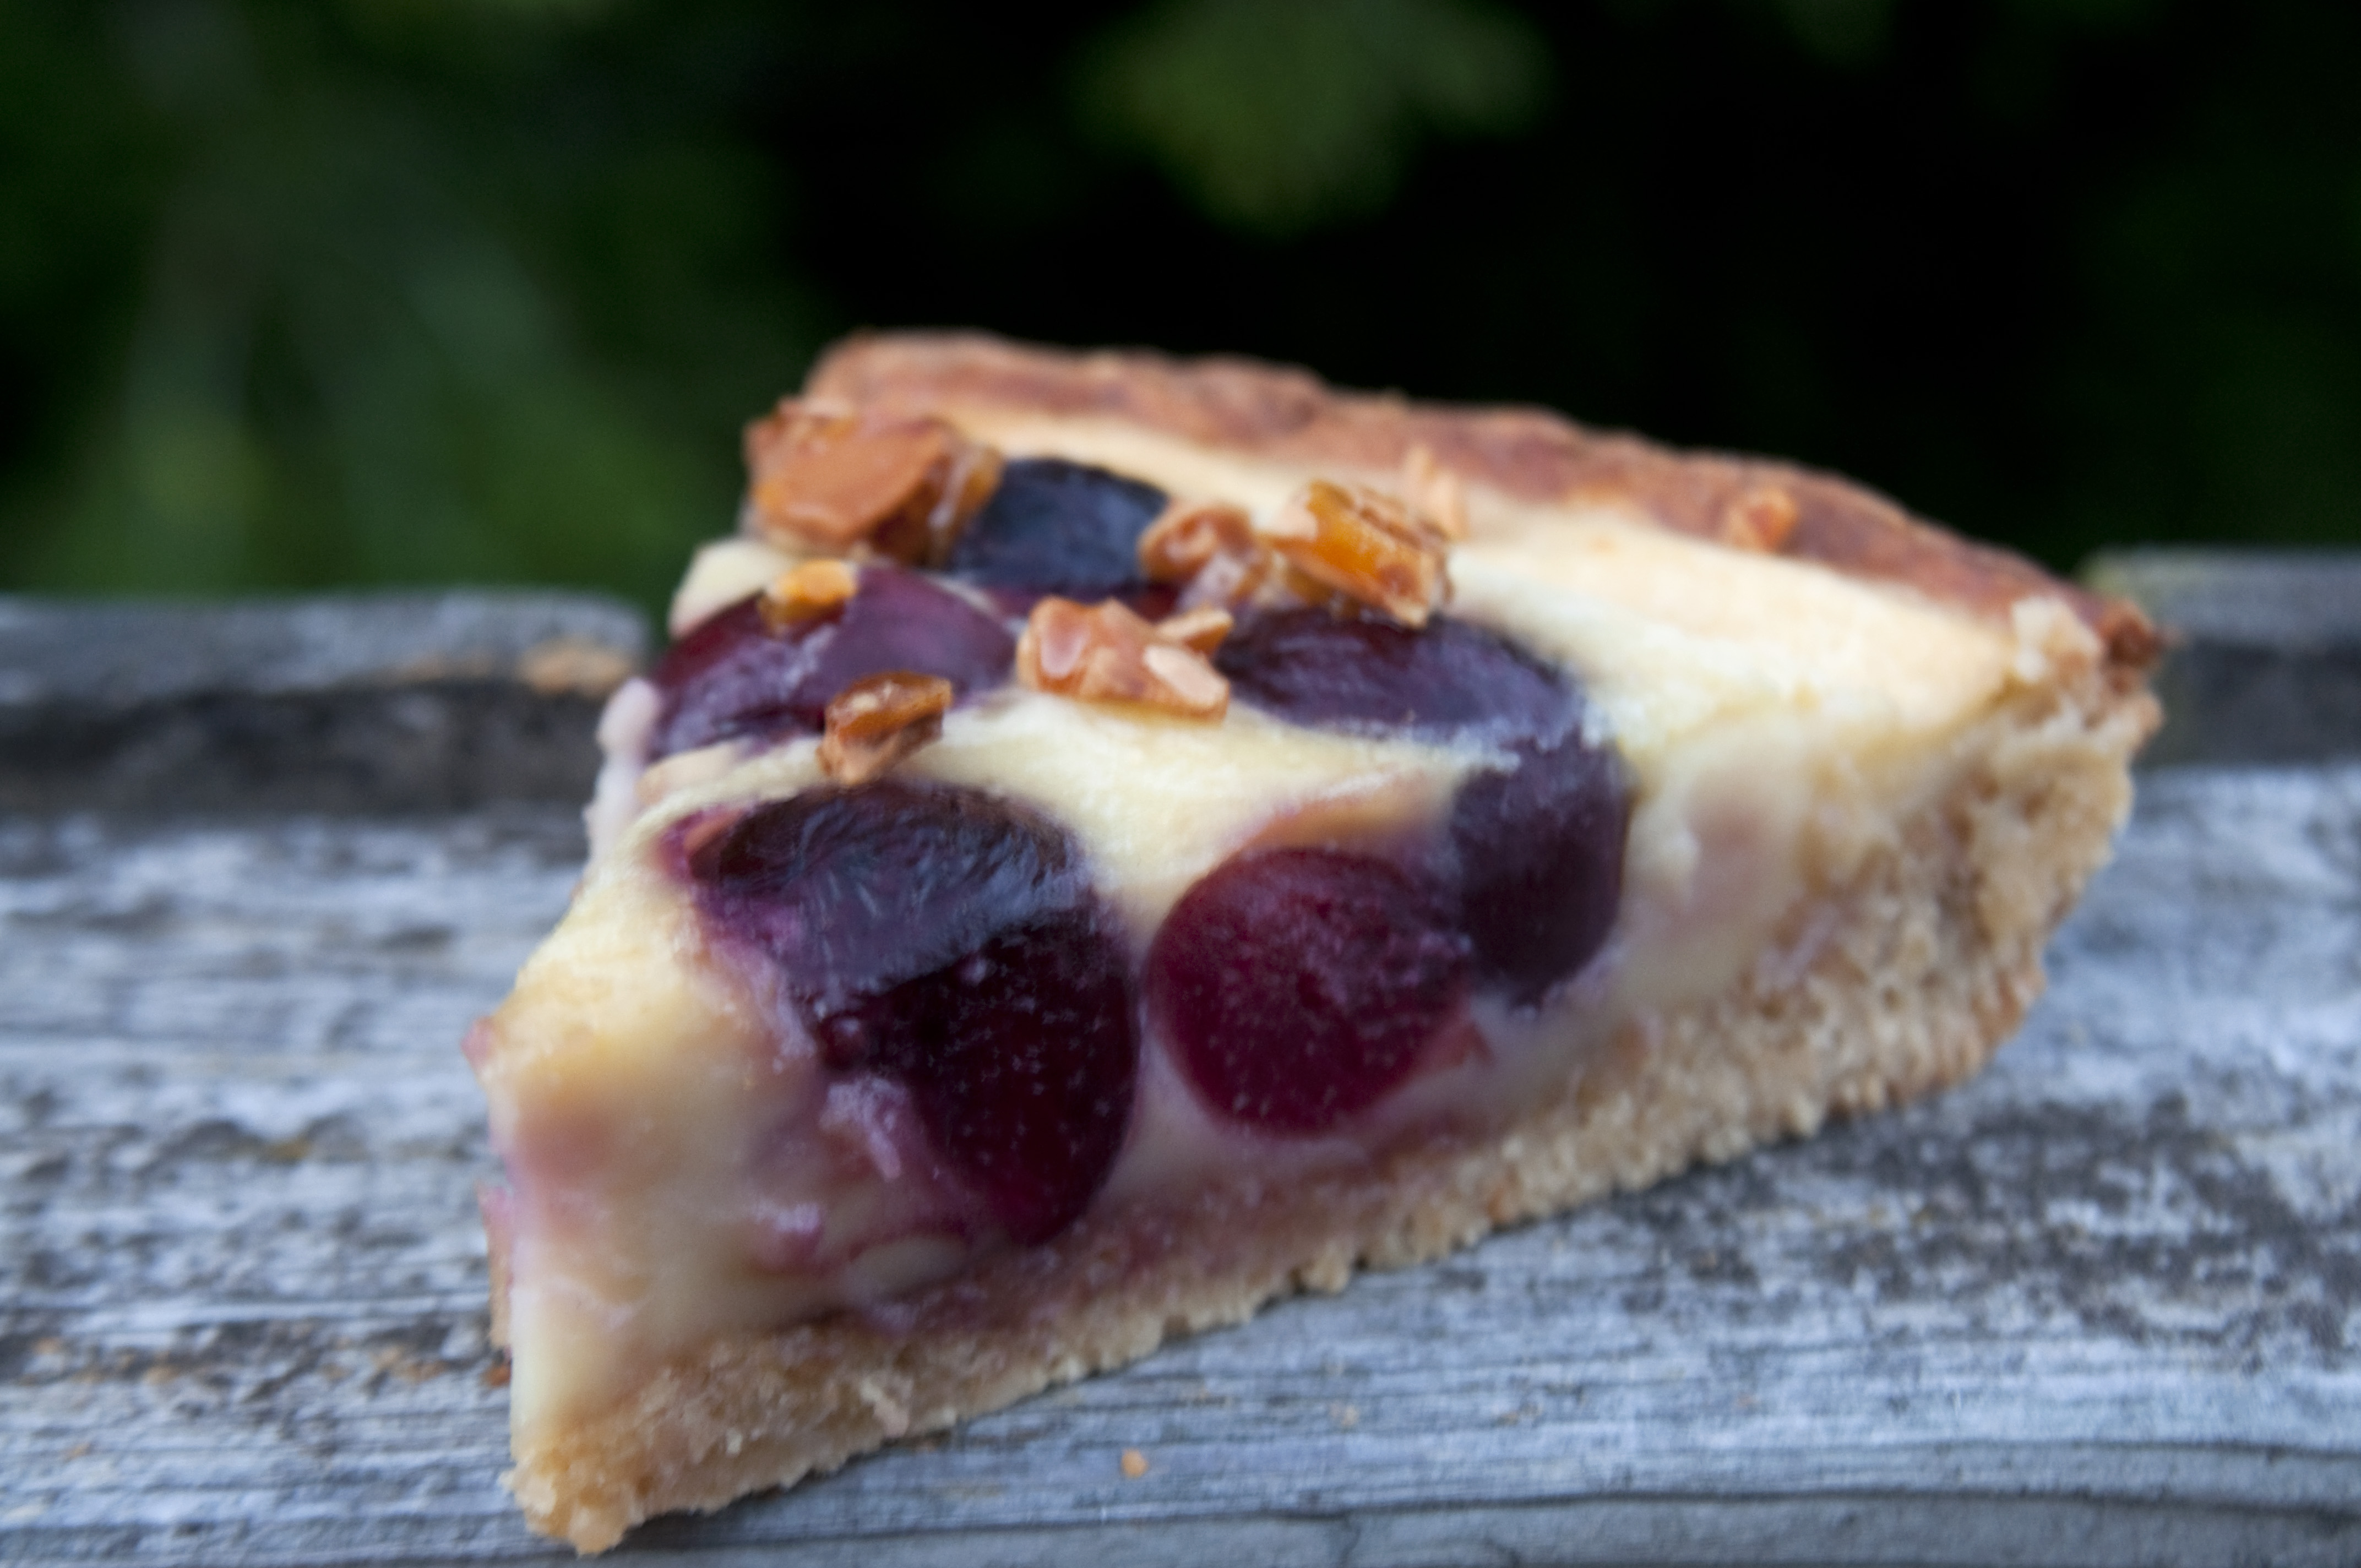 Cherry Amaretto Clafouti Tart with Almond Praline